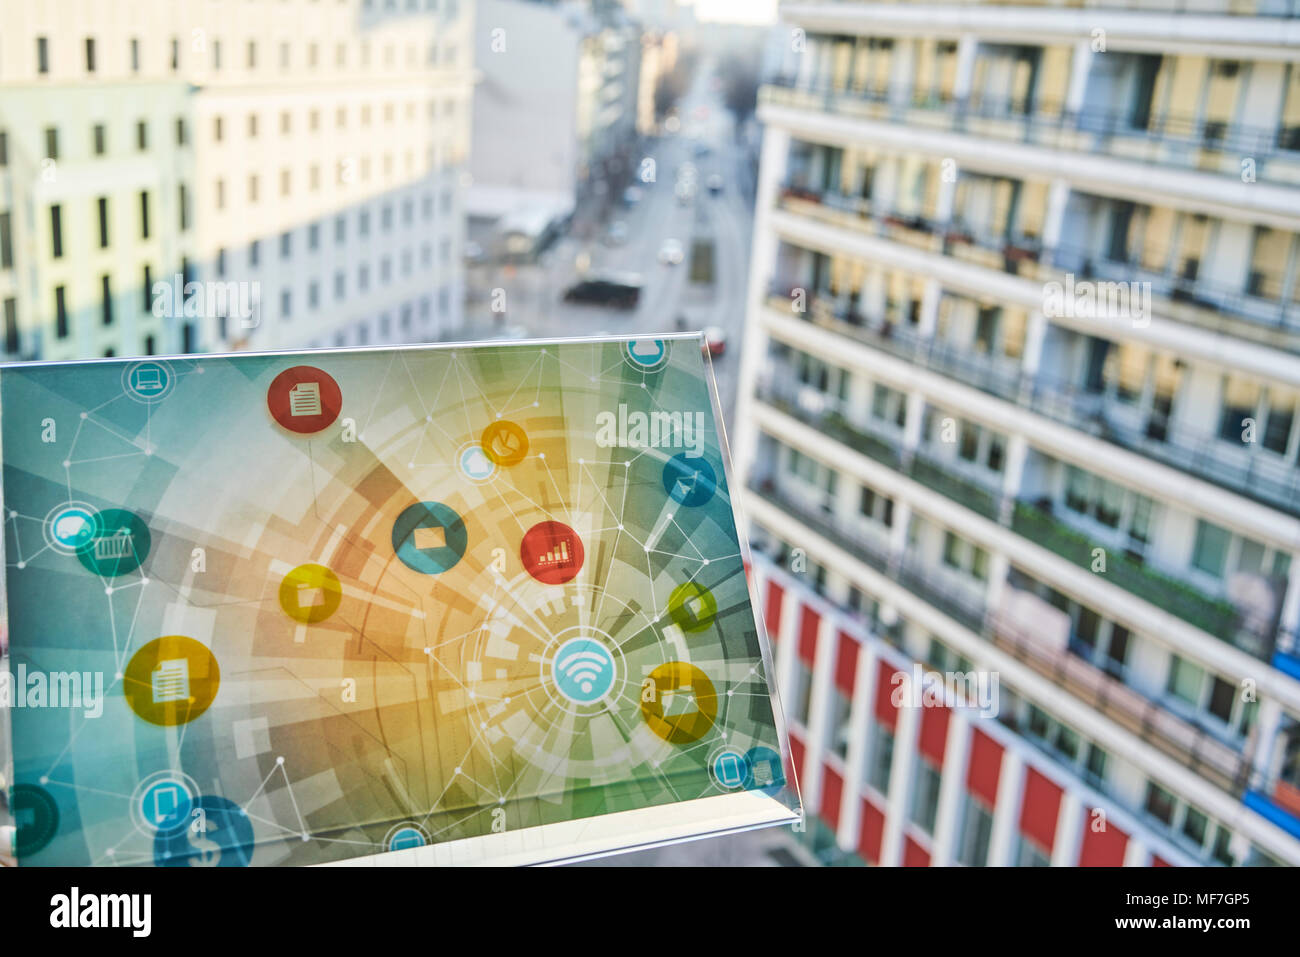 Futuristic device with digital icons in the city - Stock Image